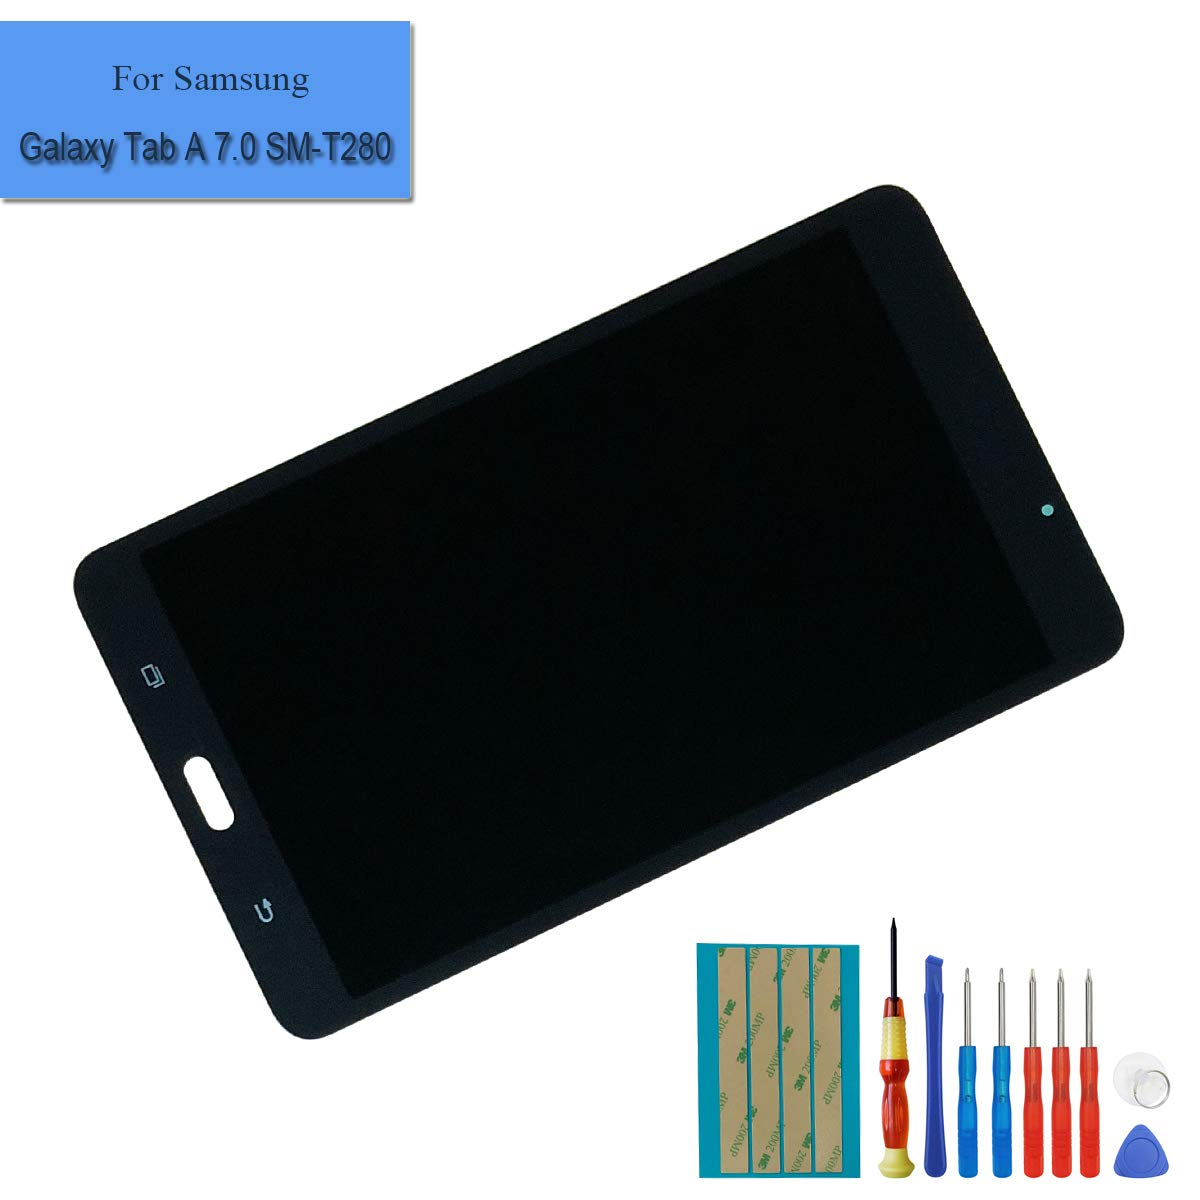 Black LCD Touch Screen Display Assembly Digitizer Compatible with Samsung Galaxy Tab A 7.0 2016 WiFi SM-T280 + Tools